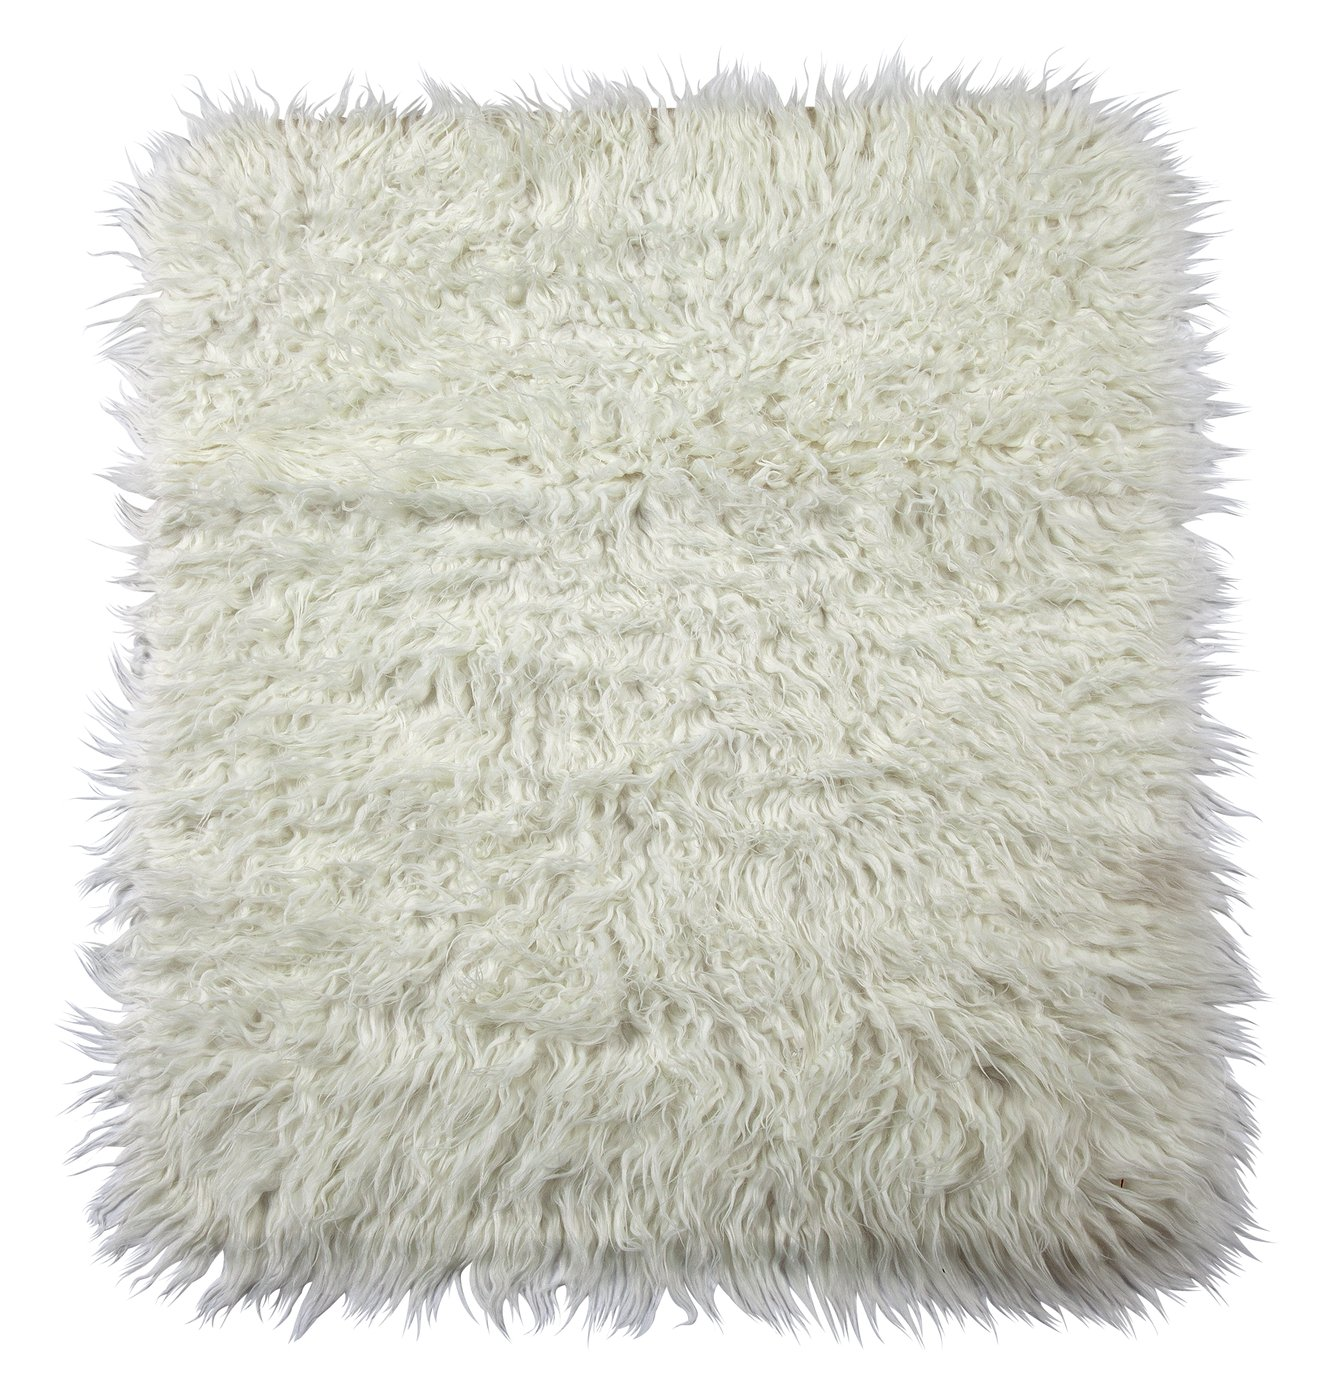 Argos Home Faux Flokati Rug - 75x100cm -  Natural